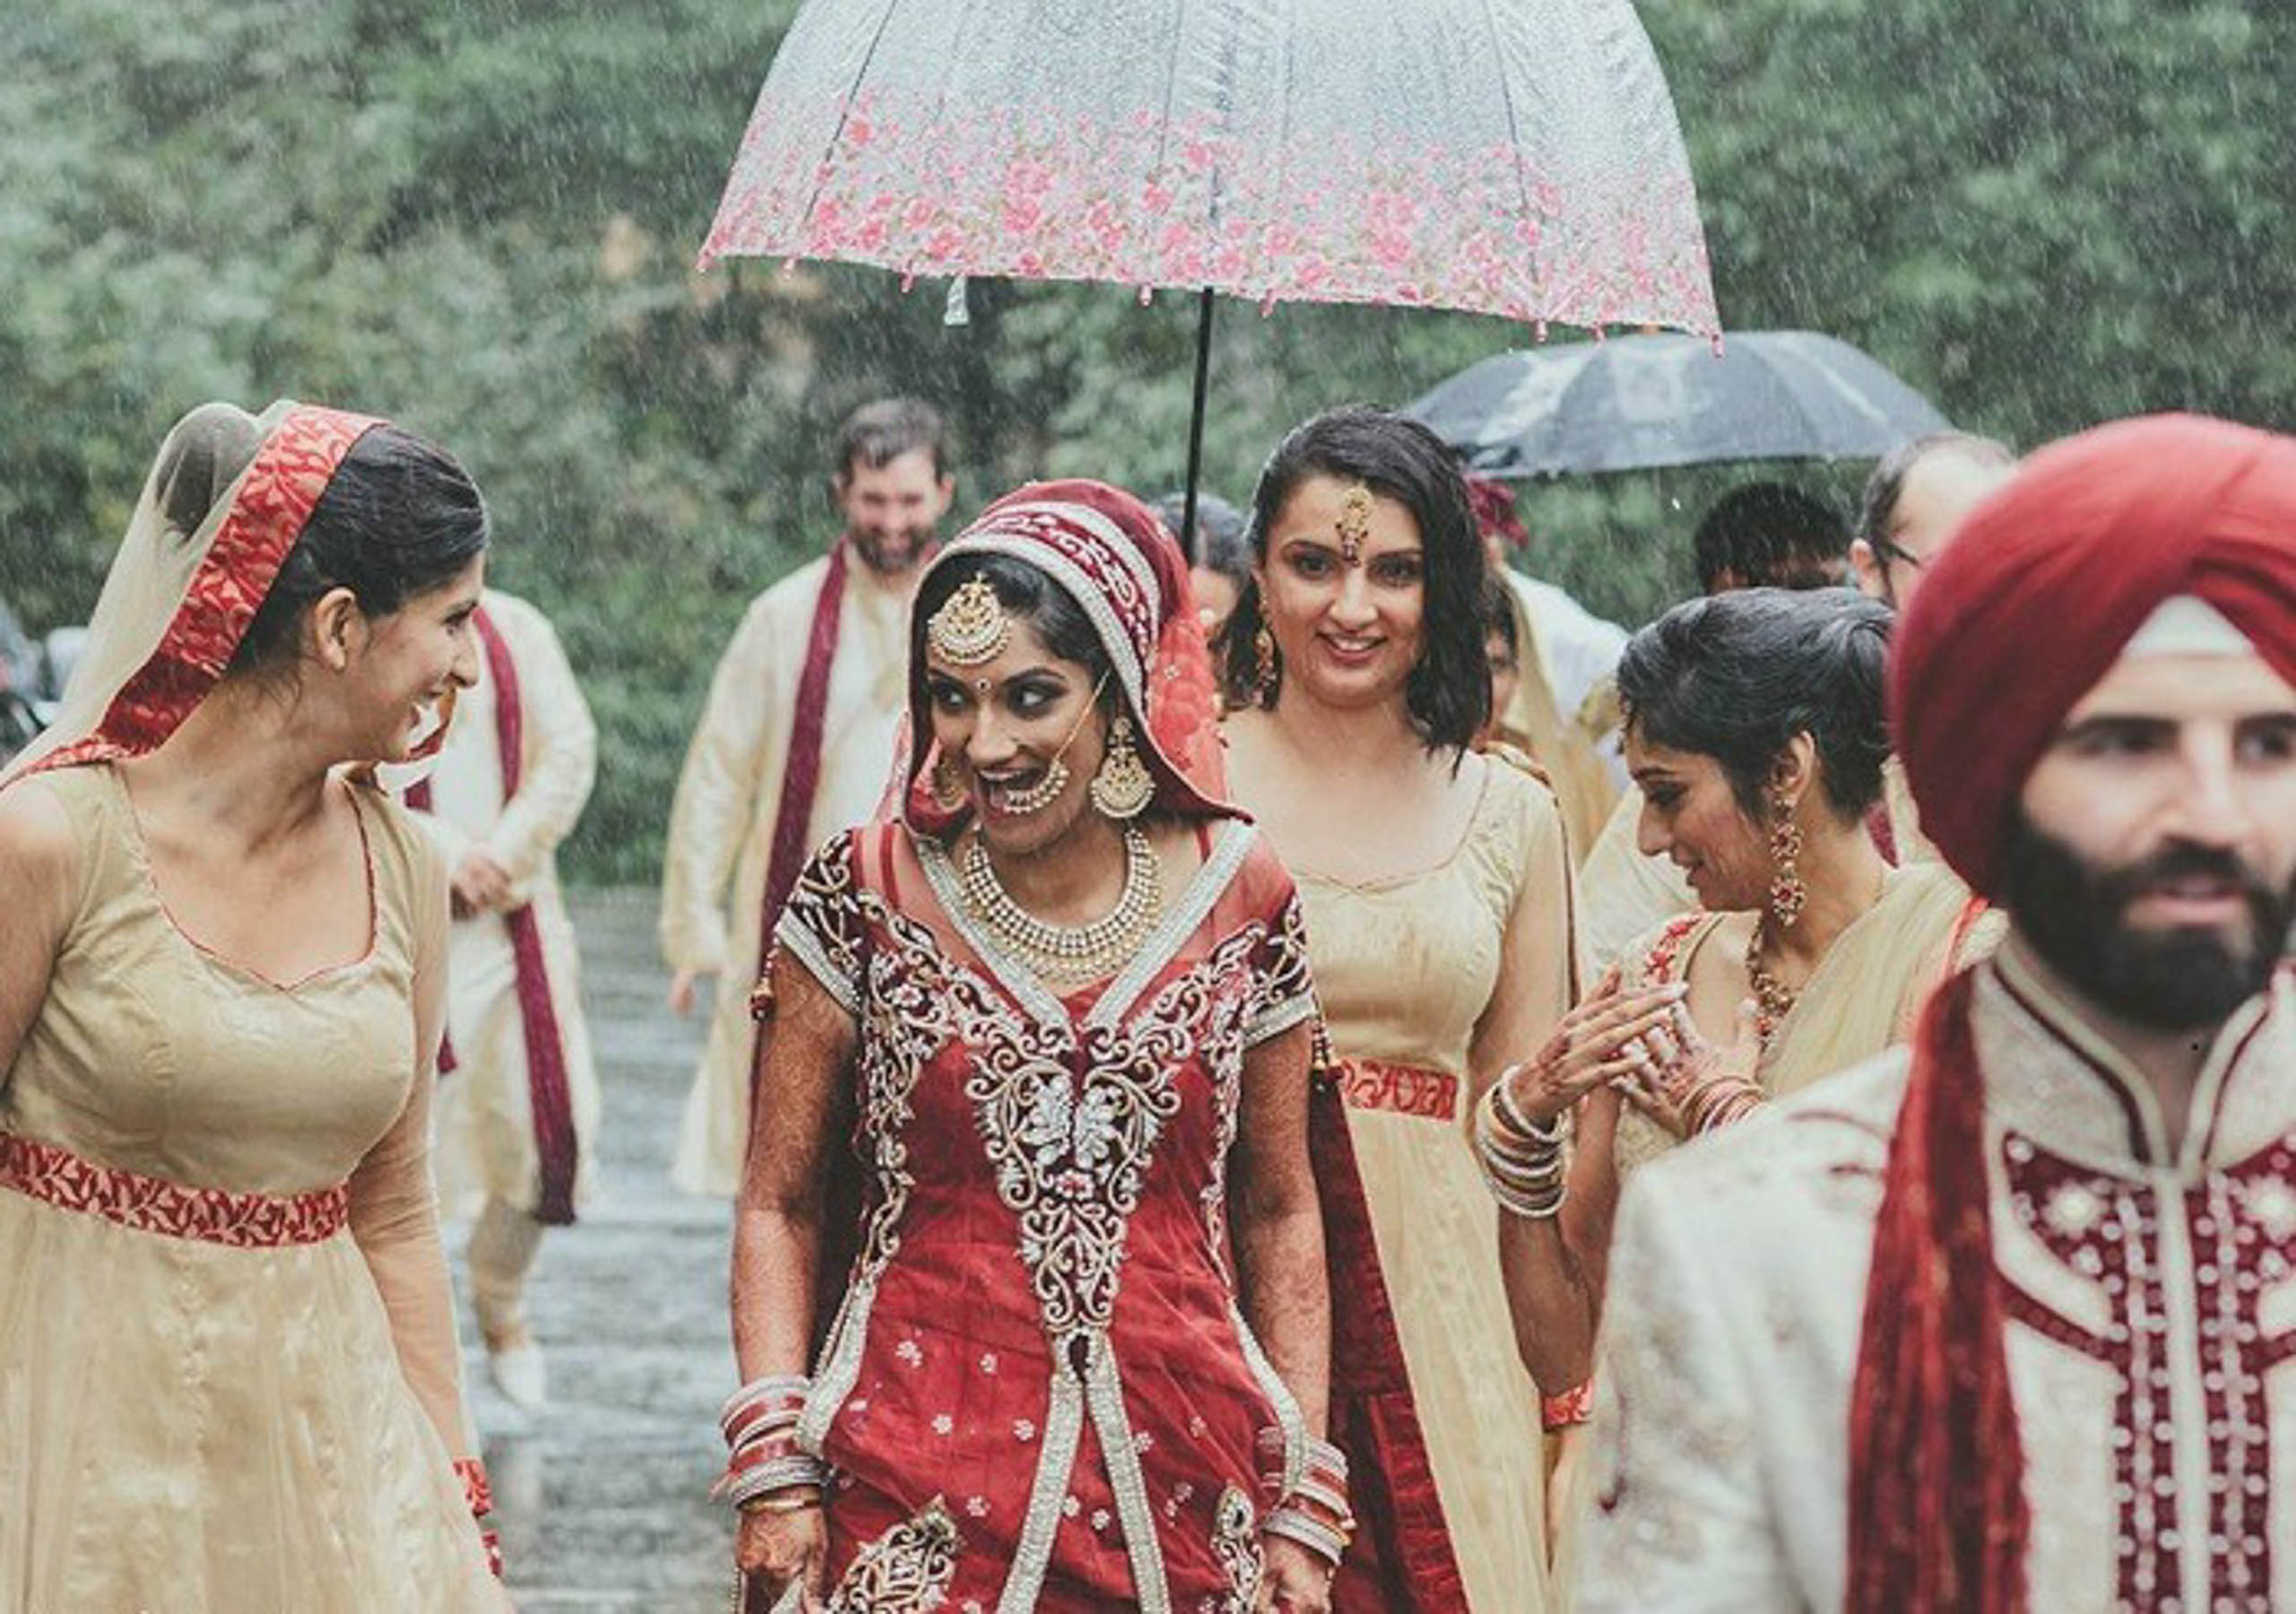 Rain, rain go away! Here's how to deal with inclement weather conditions on your wedding day.